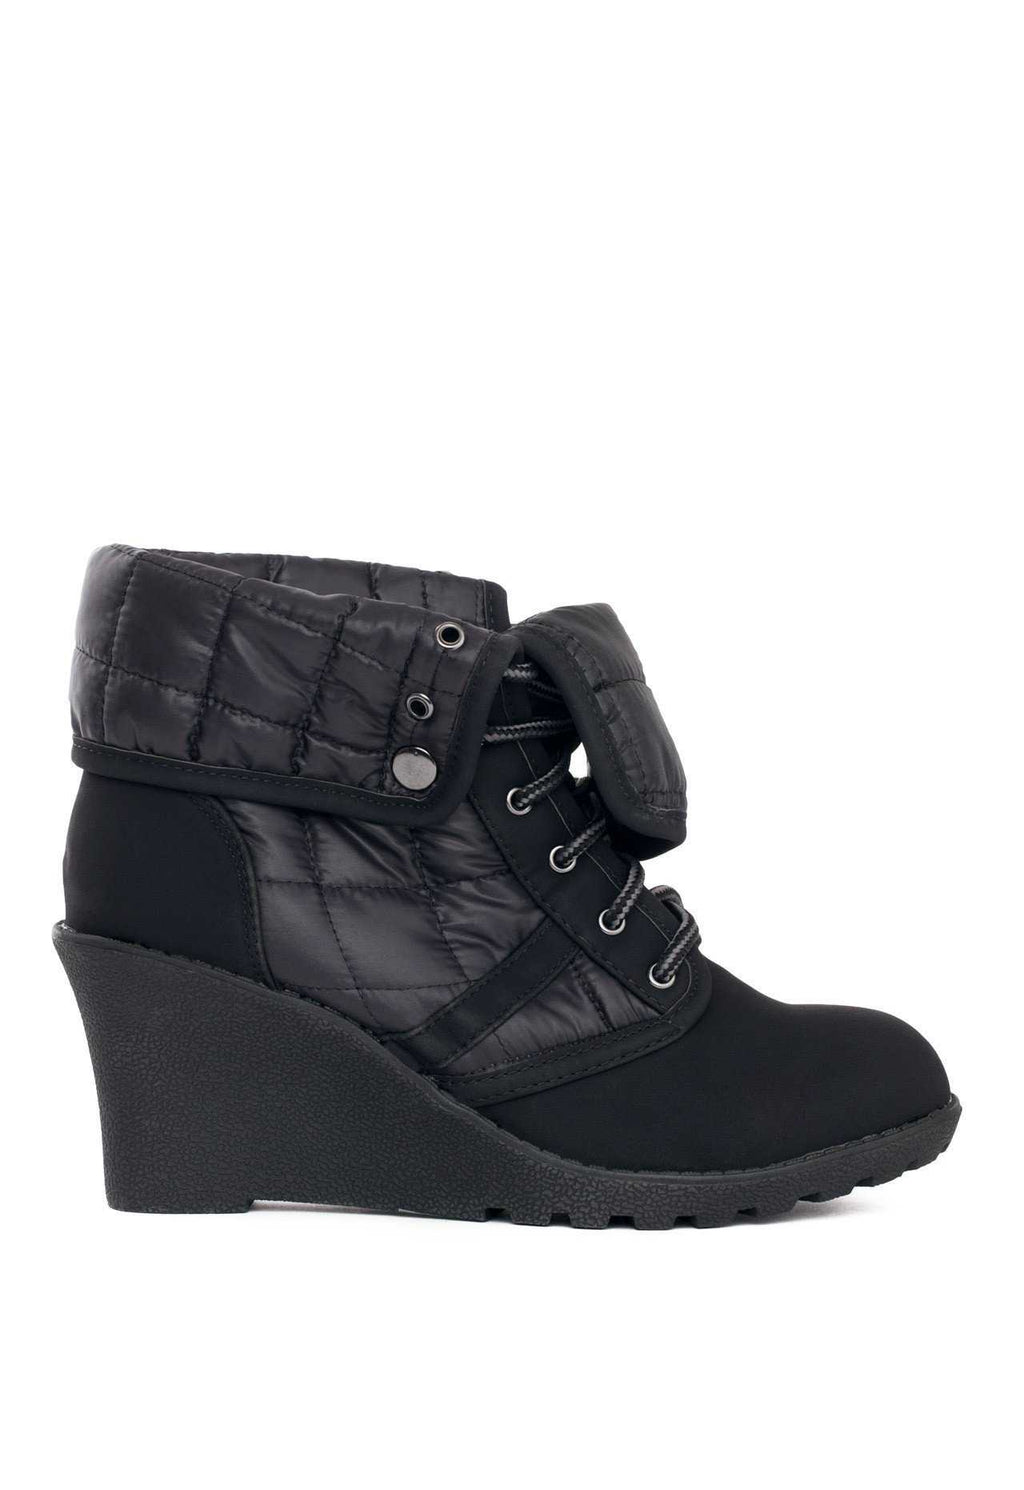 Booties - Northern Heights Booties In Black